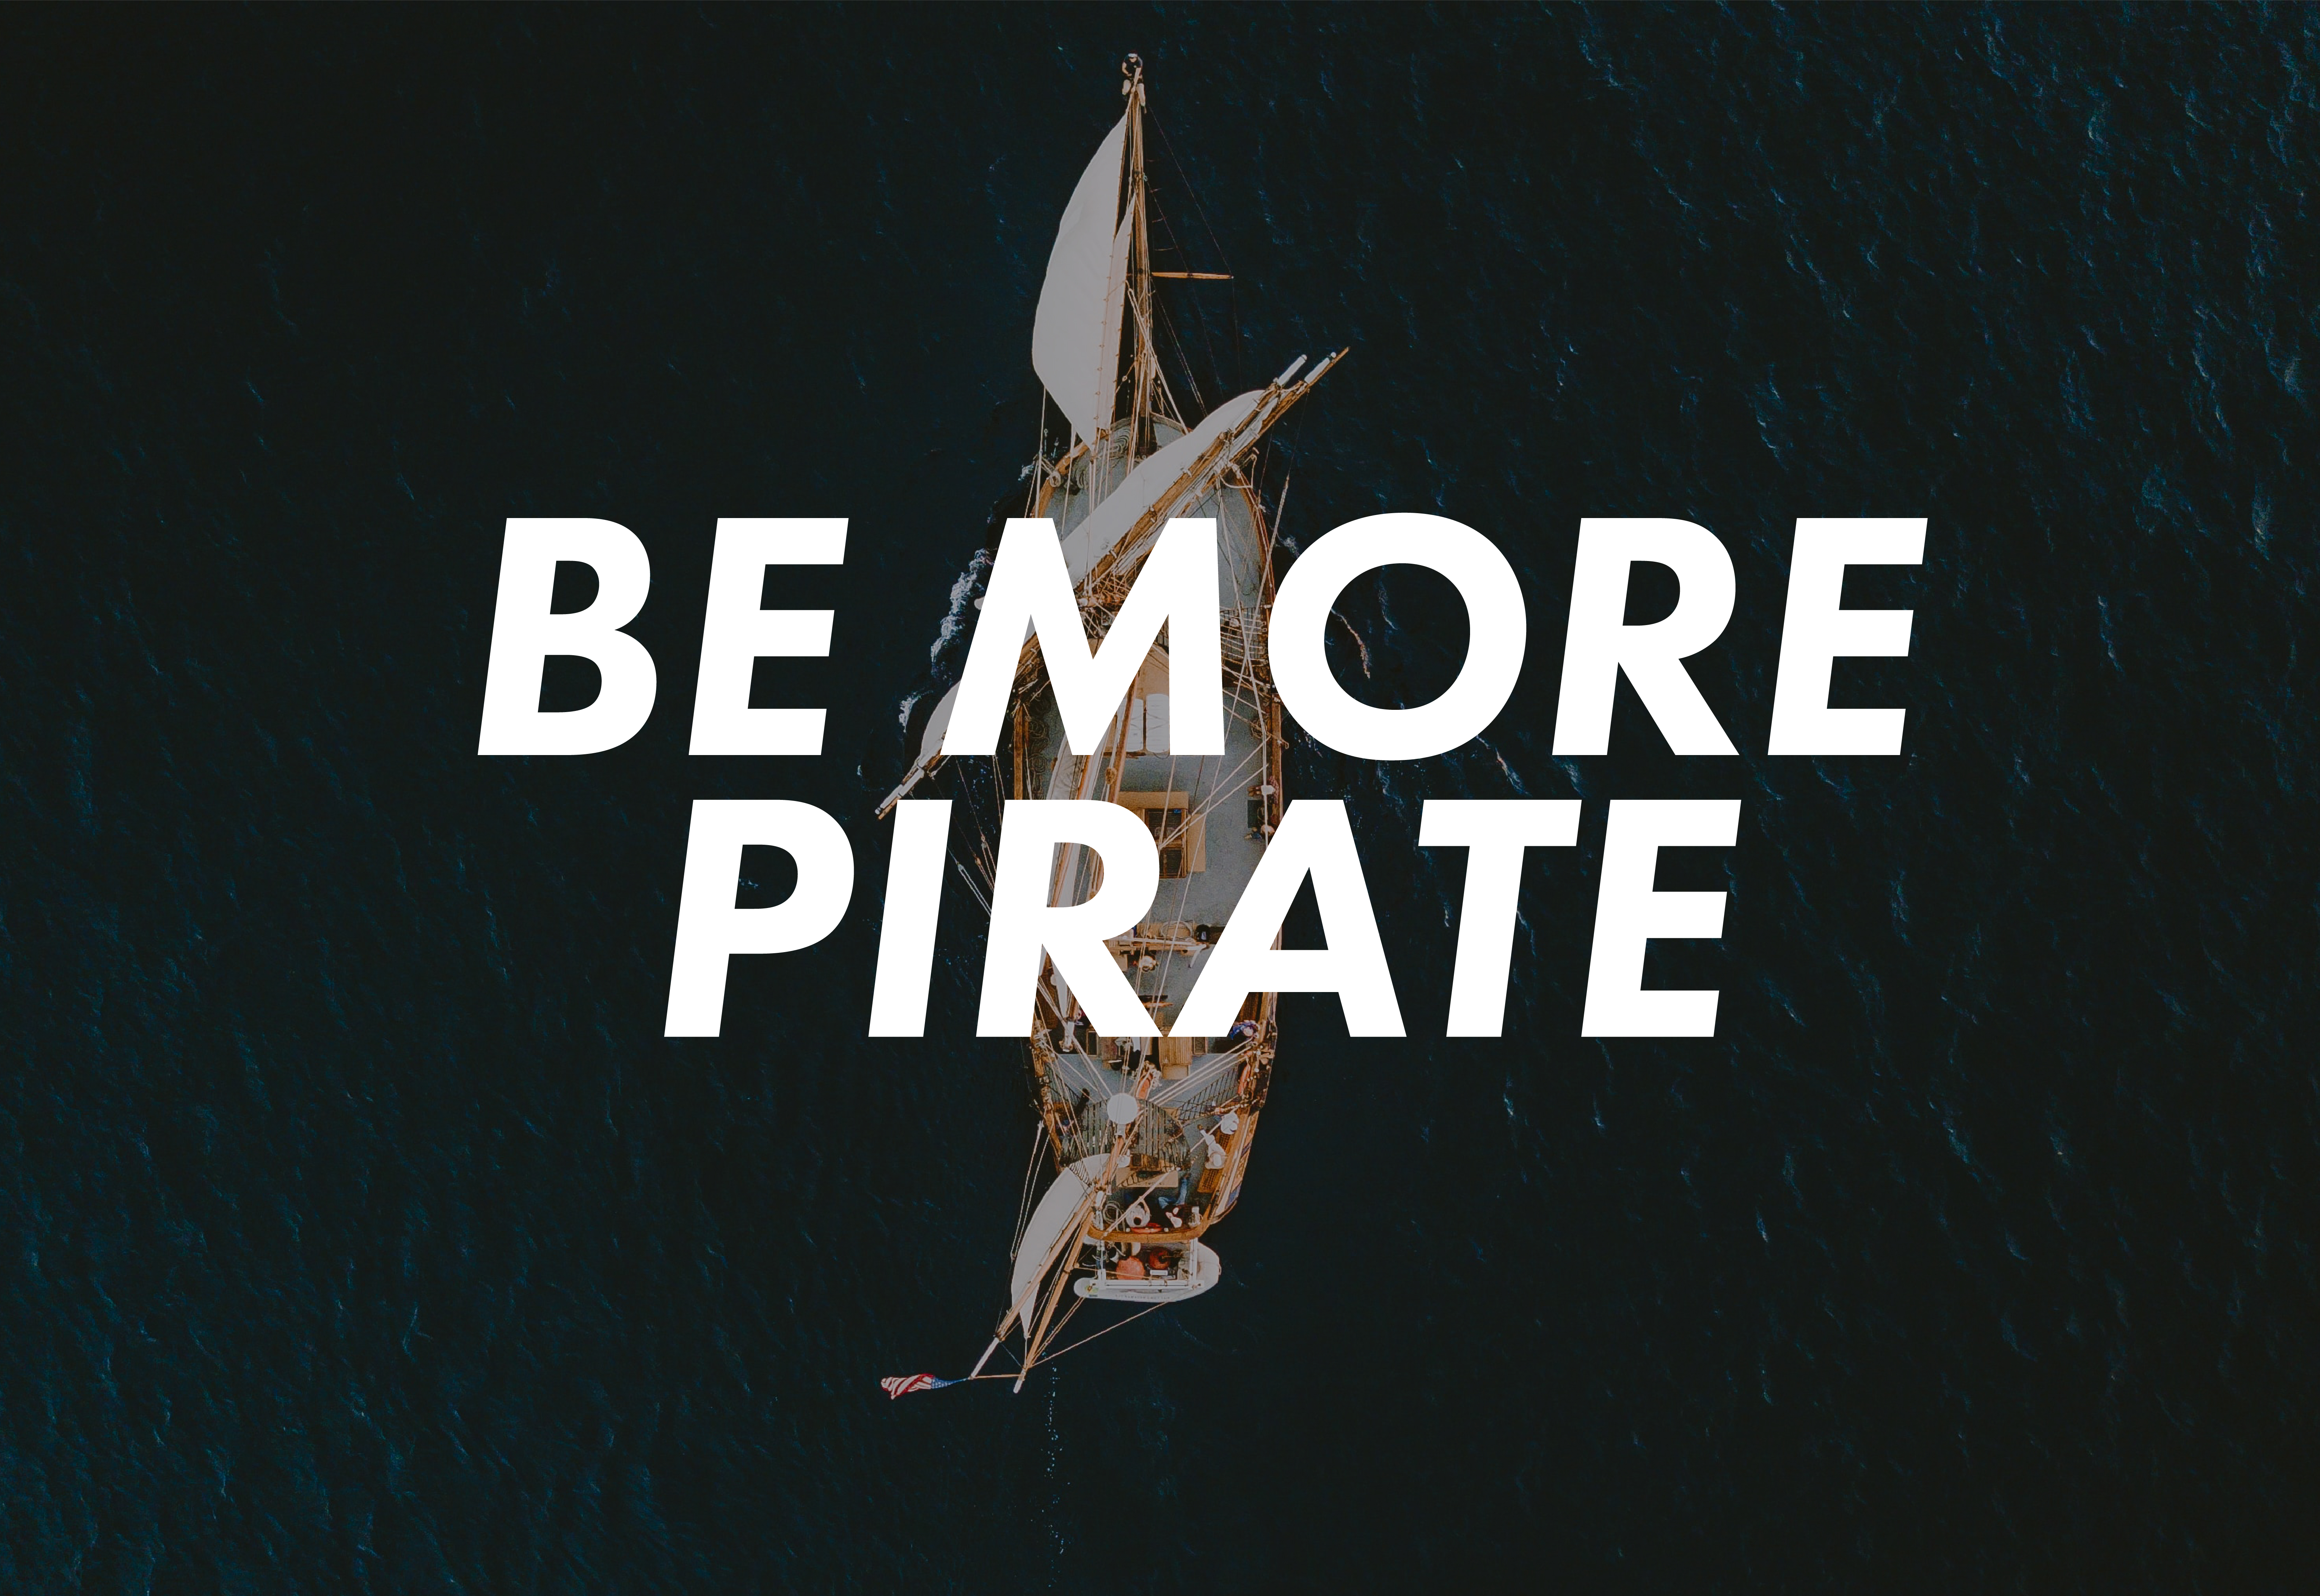 Entrepreneurs, it's time to be more Pirate!